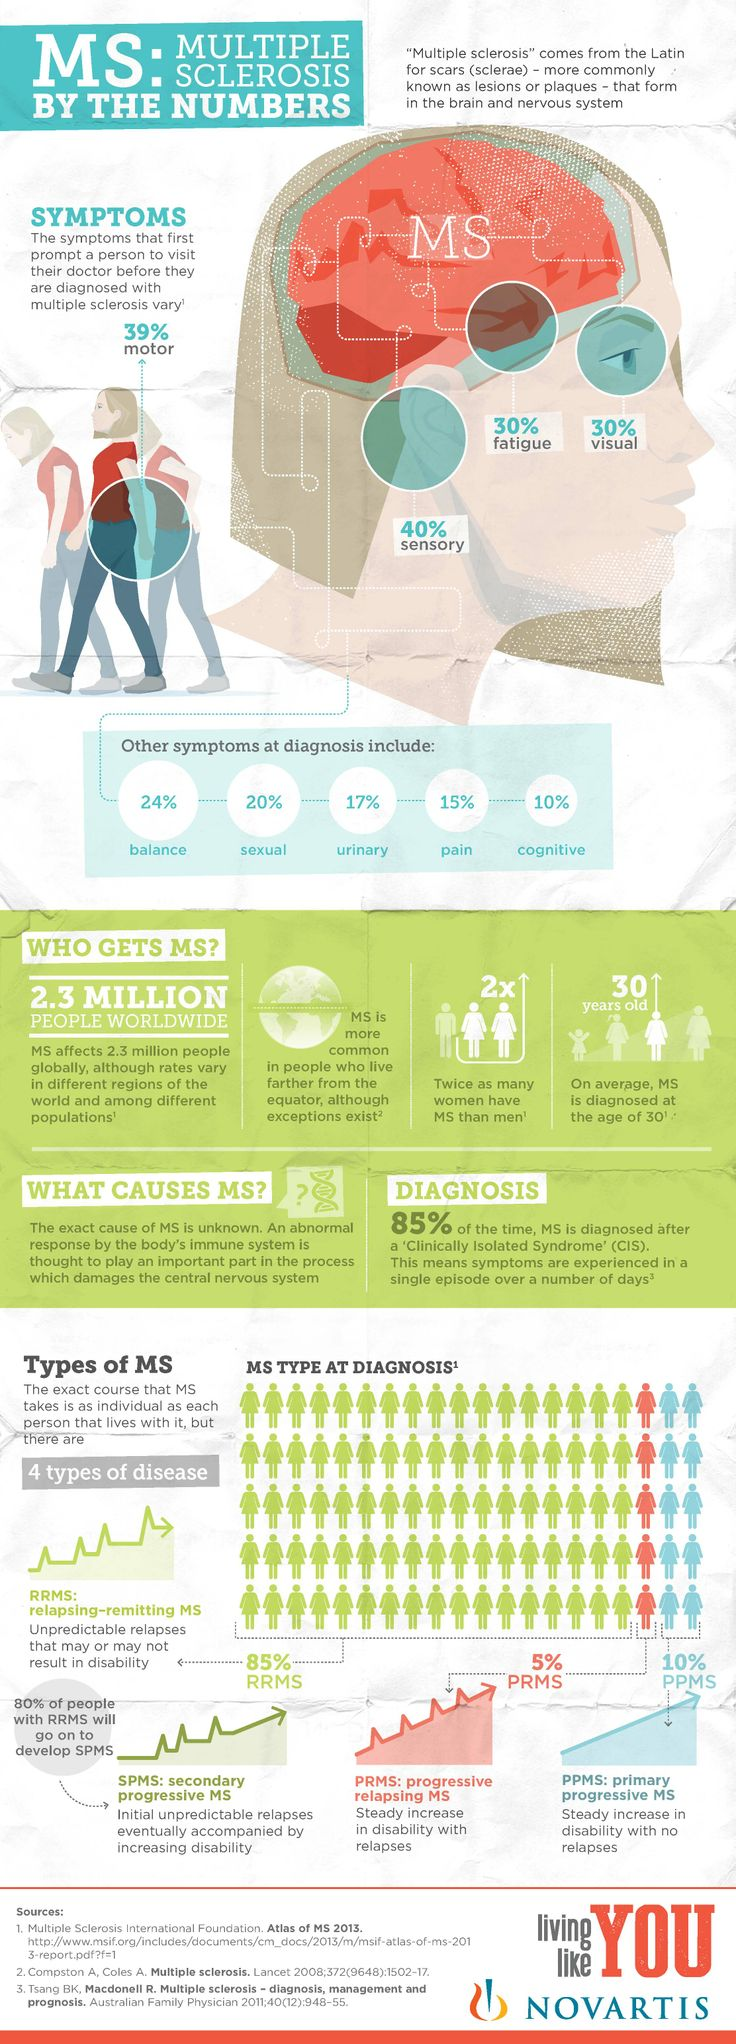 Test your knowledge on facts and figures of multiple sclerosis with this infographic.